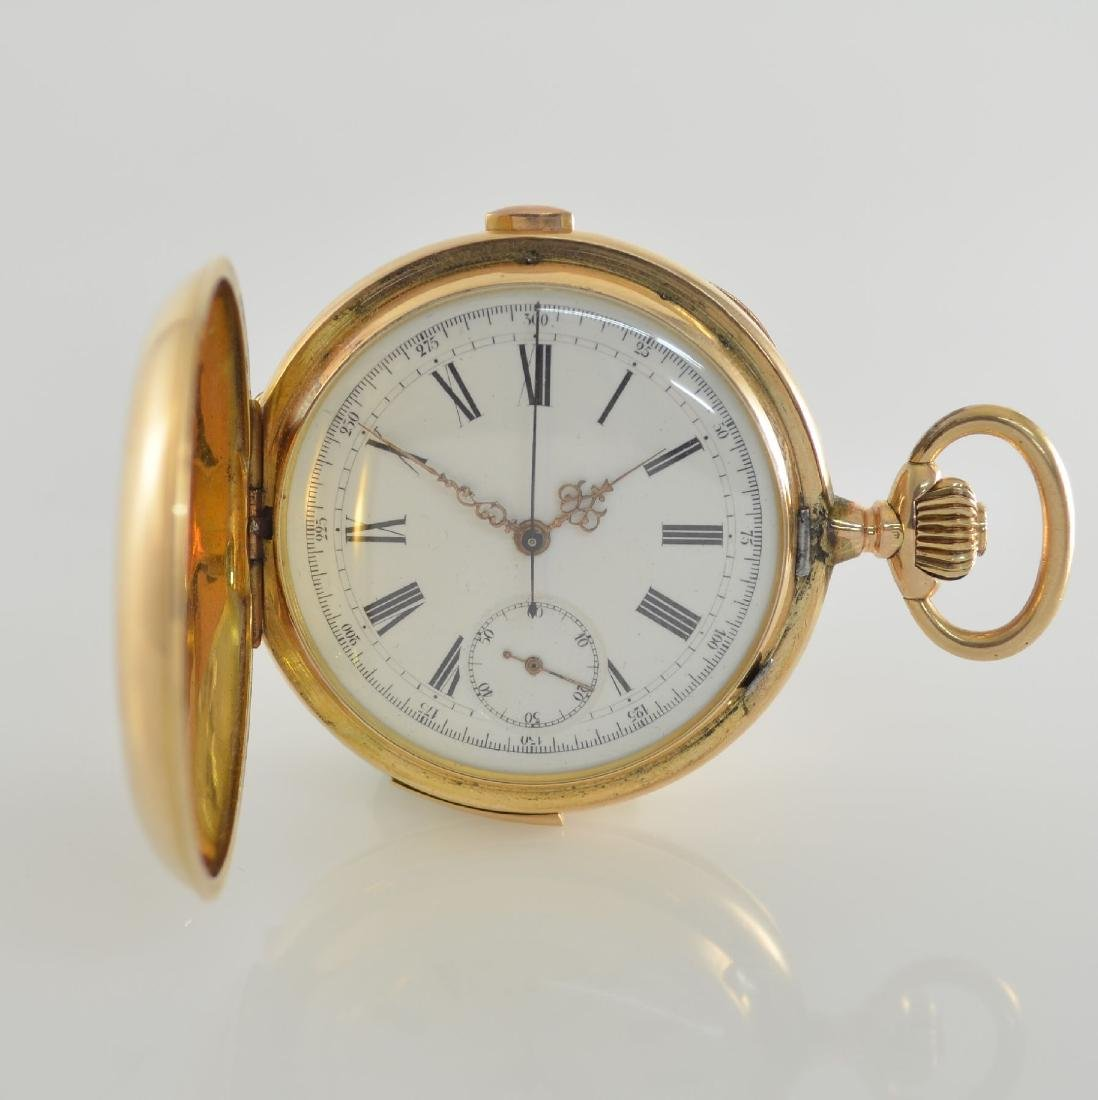 14k gold pocket watch with 1/4 repetition